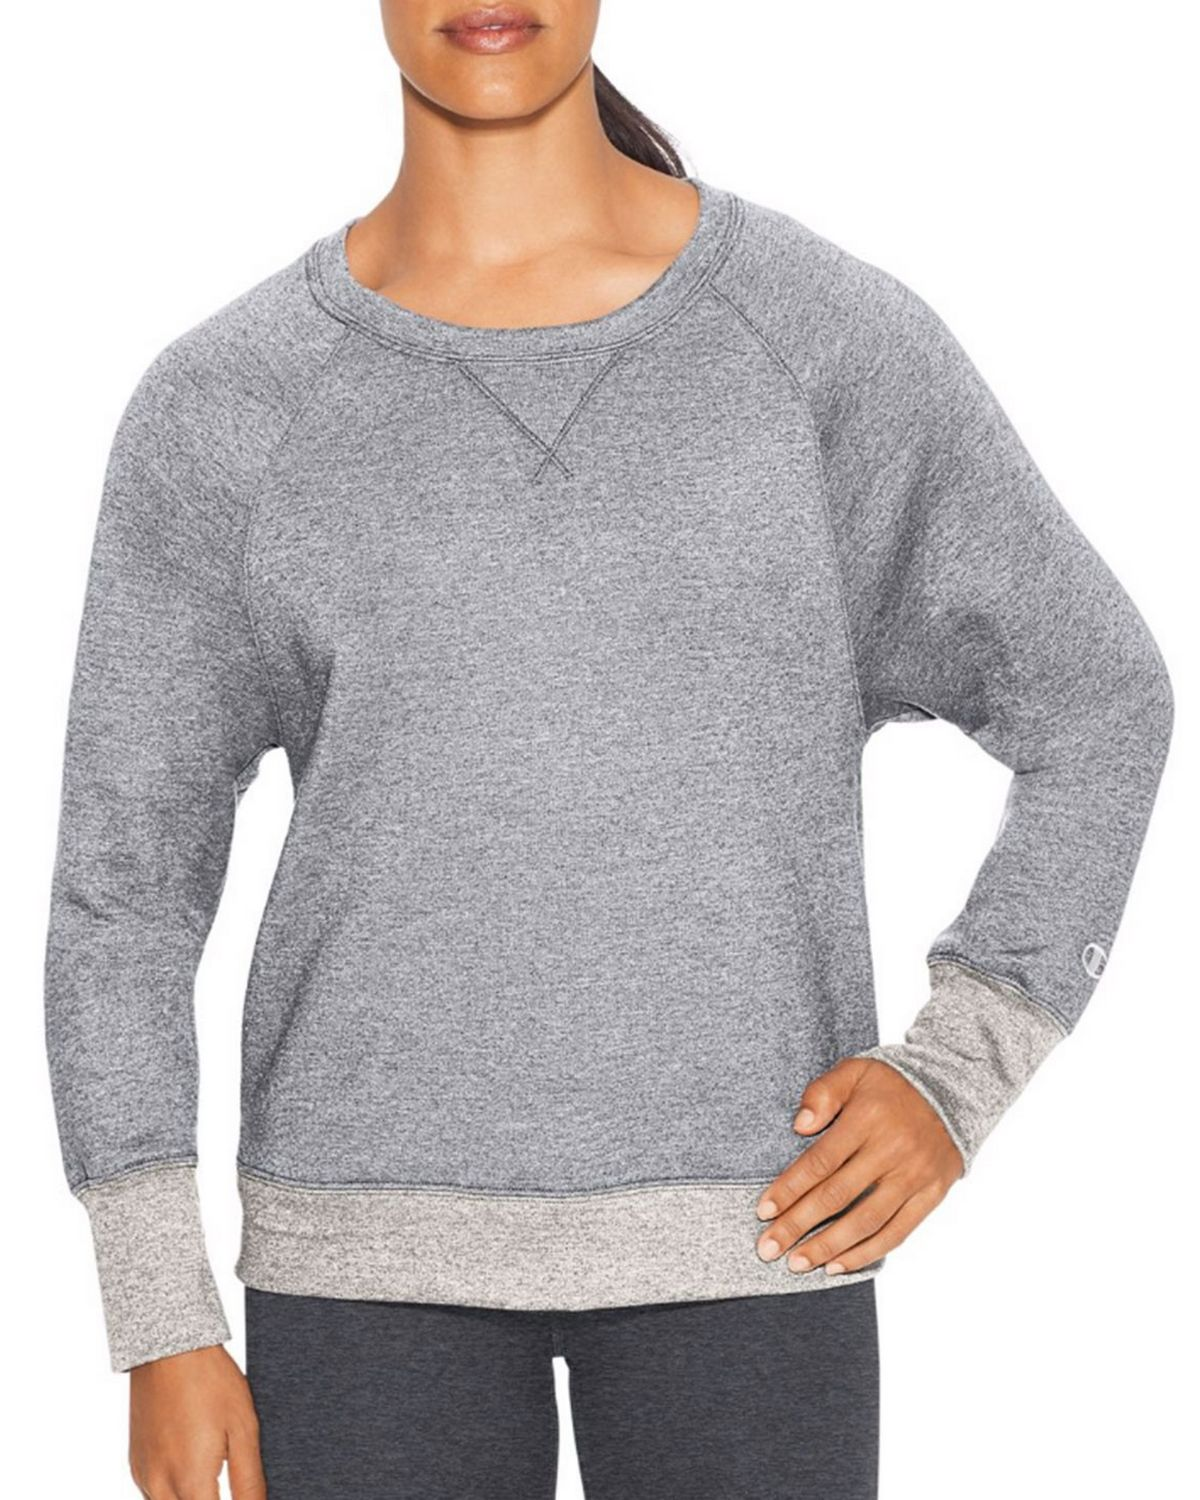 Champion W29567 Womens Boyfriend Crew - Oxford Grey Heather/Oatmeal Heather - L W29567